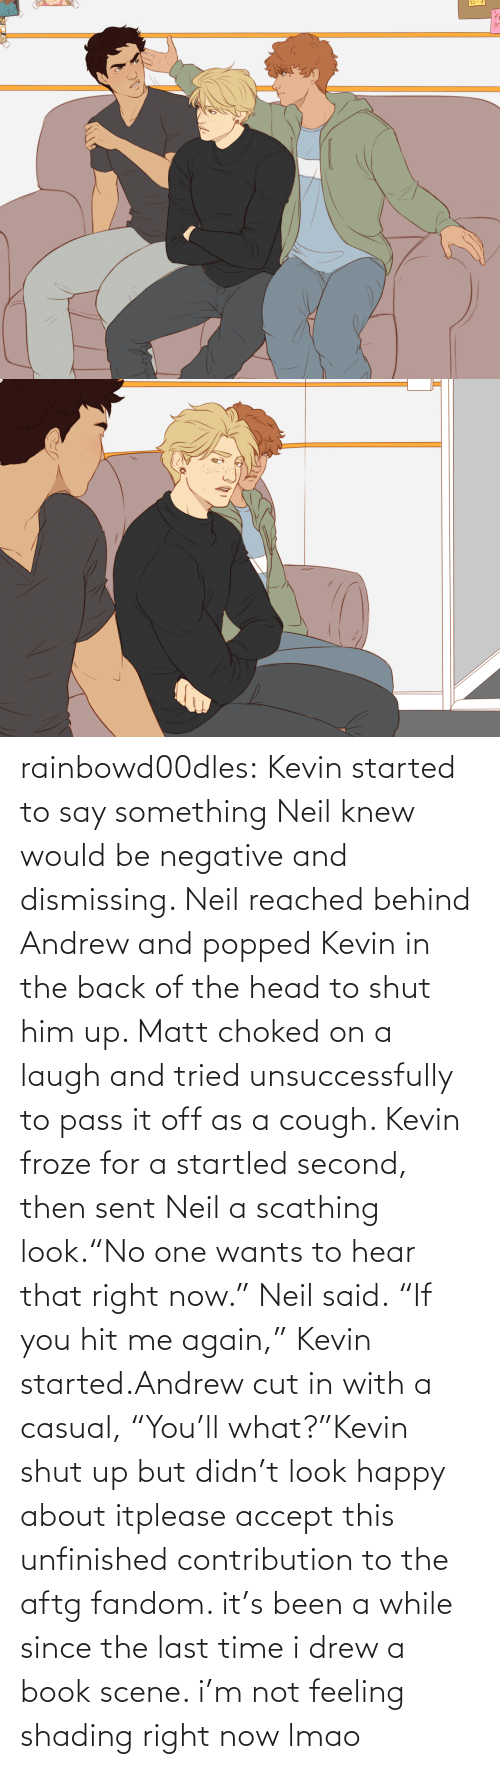 "The Last: rainbowd00dles:  Kevin started to say something Neil knew would be negative and dismissing. Neil reached behind Andrew and popped Kevin in the back of the head to shut him up. Matt choked on a laugh and tried unsuccessfully to pass it off as a cough. Kevin froze for a startled second, then sent Neil a scathing look.""No one wants to hear that right now."" Neil said. ""If you hit me again,"" Kevin started.Andrew cut in with a casual, ""You'll what?""Kevin shut up but didn't look happy about itplease accept this unfinished contribution to the aftg fandom. it's been a while since the last time i drew a book scene. i'm not feeling shading right now lmao"